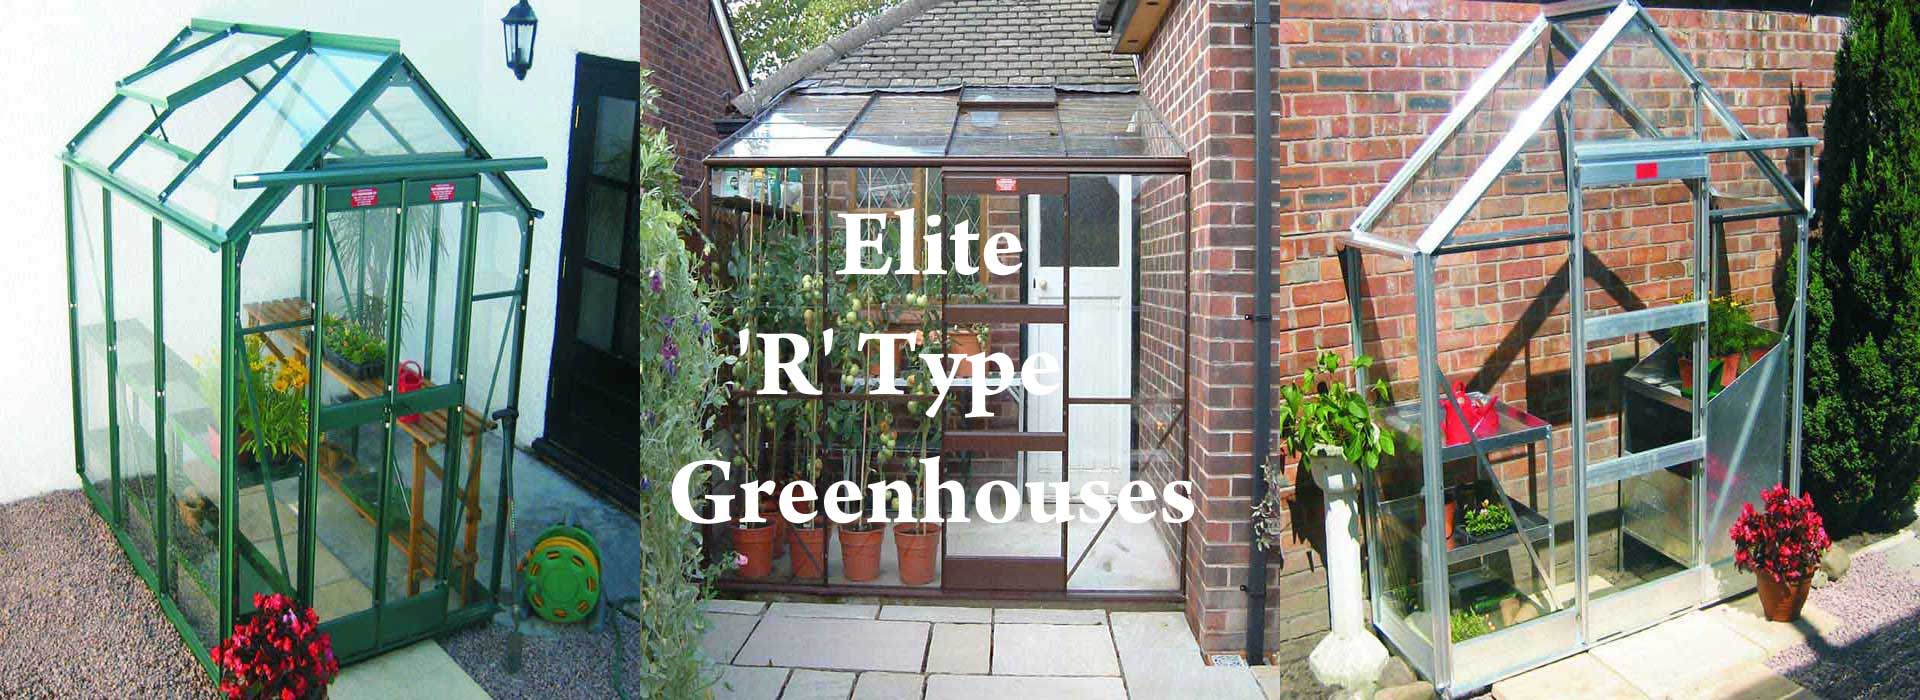 Elite 'R' Type Greenhouses